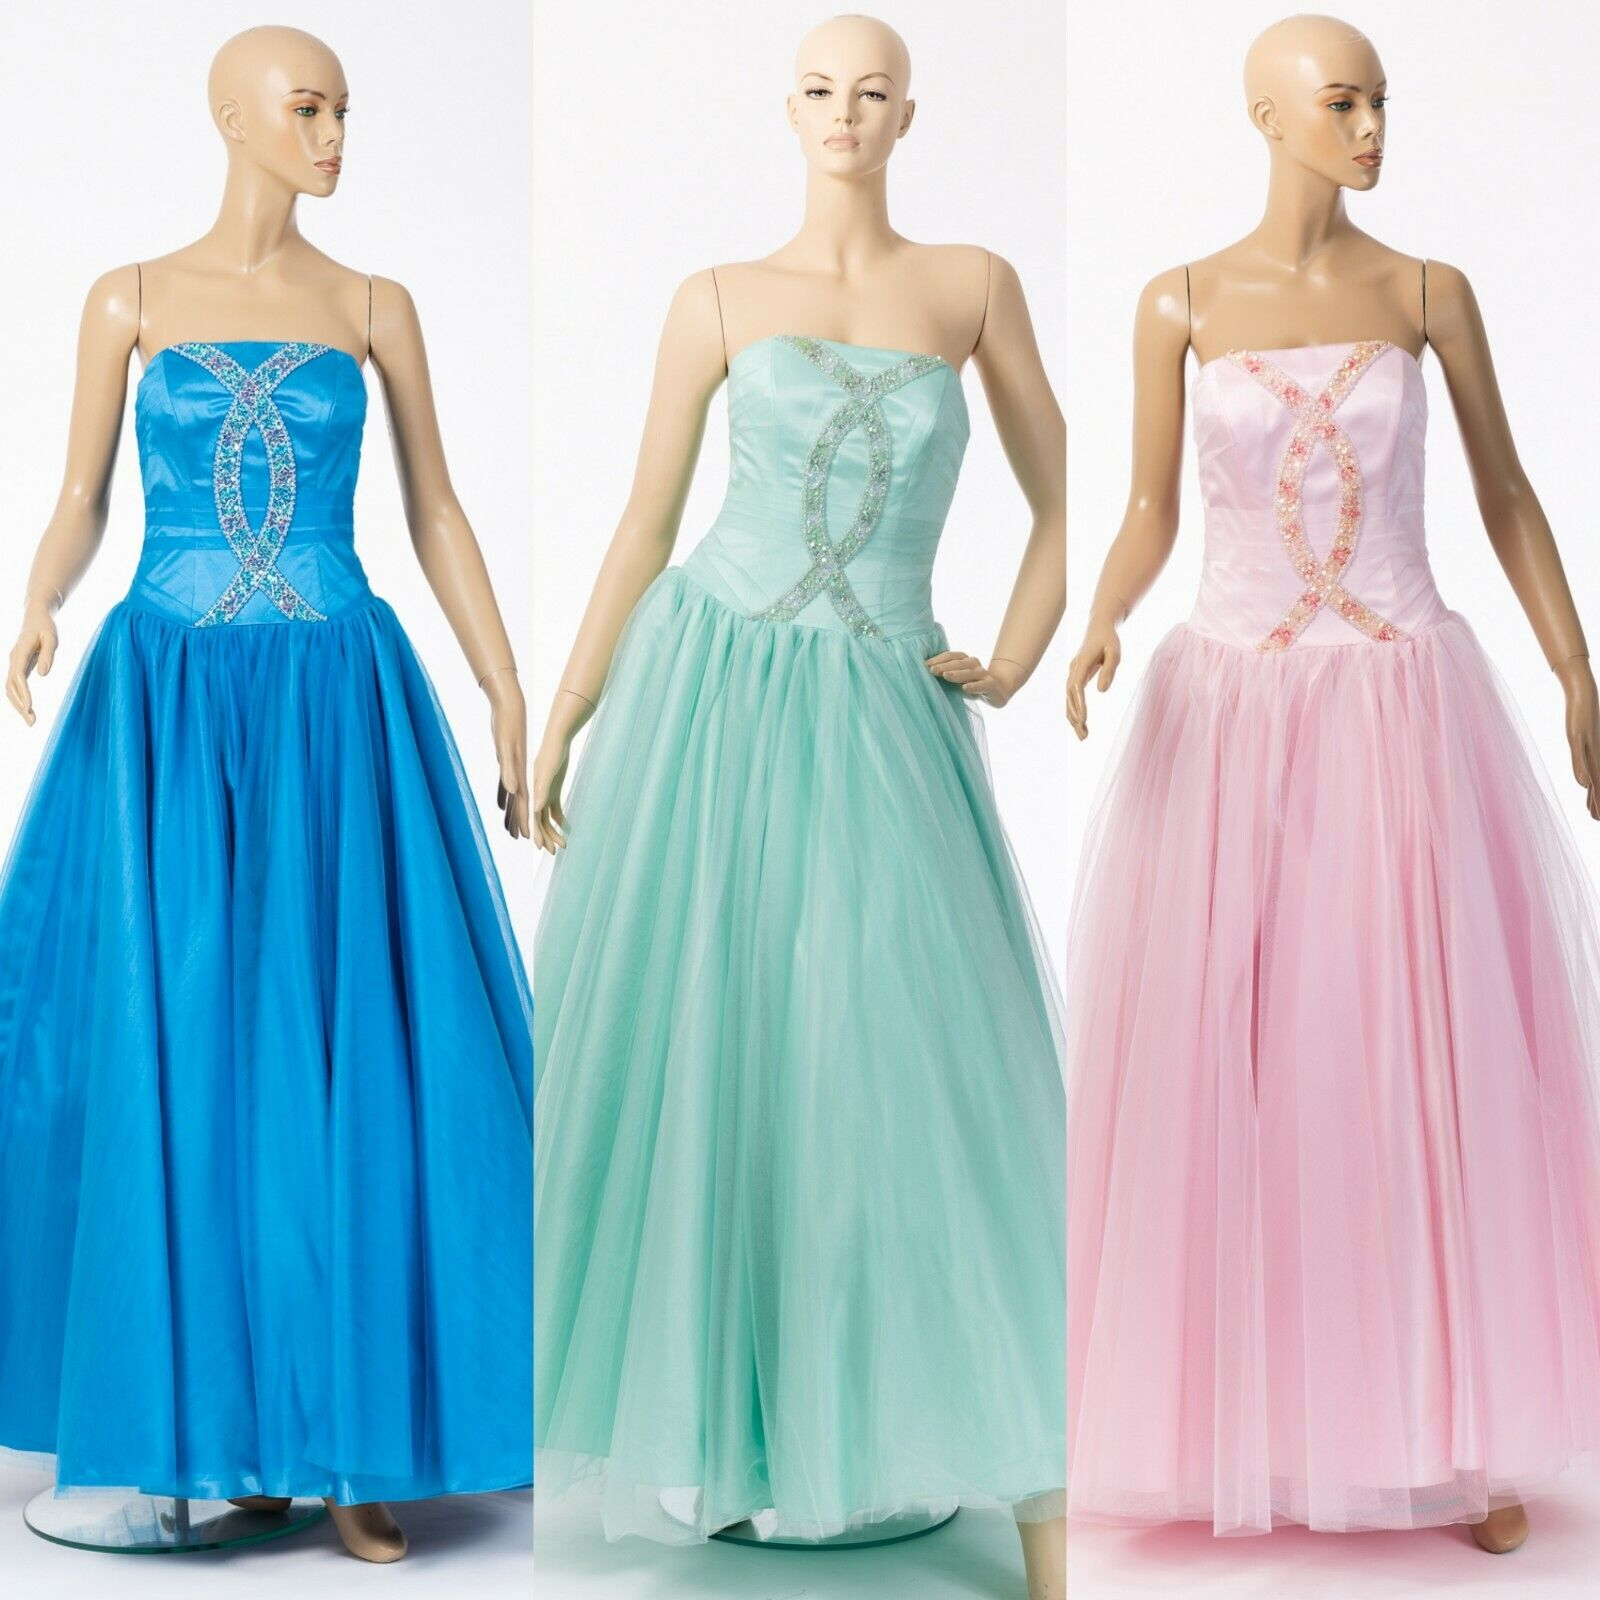 Prom Party Evening Bridesmaid Dress Wedding Ball Gown Adult Princess Costume